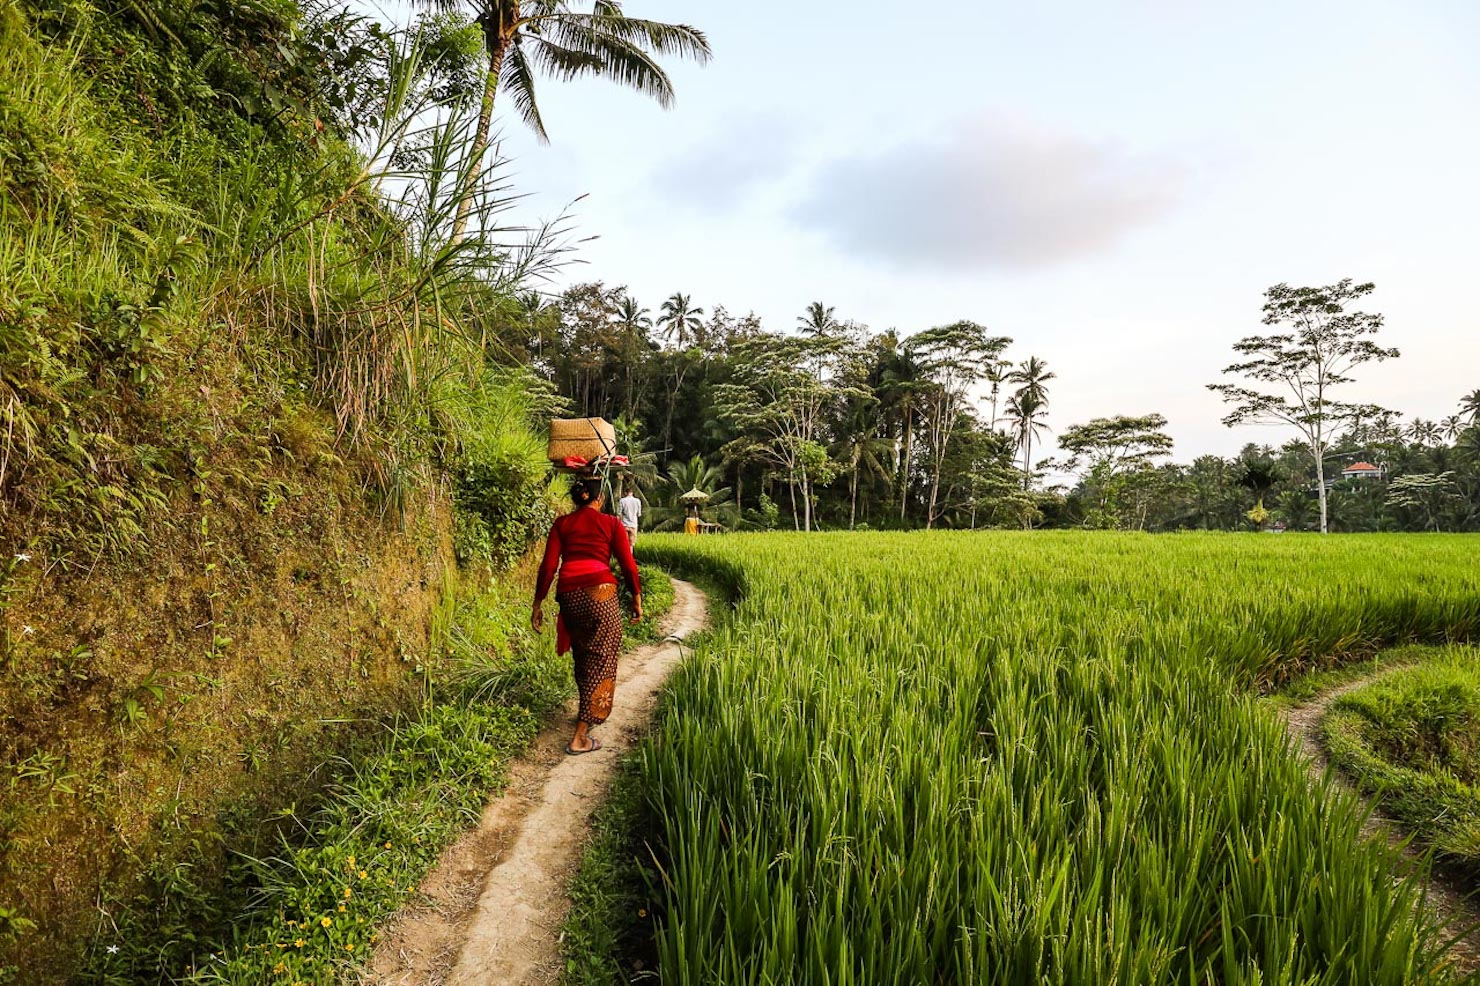 Two weeks in Bali: itinerary